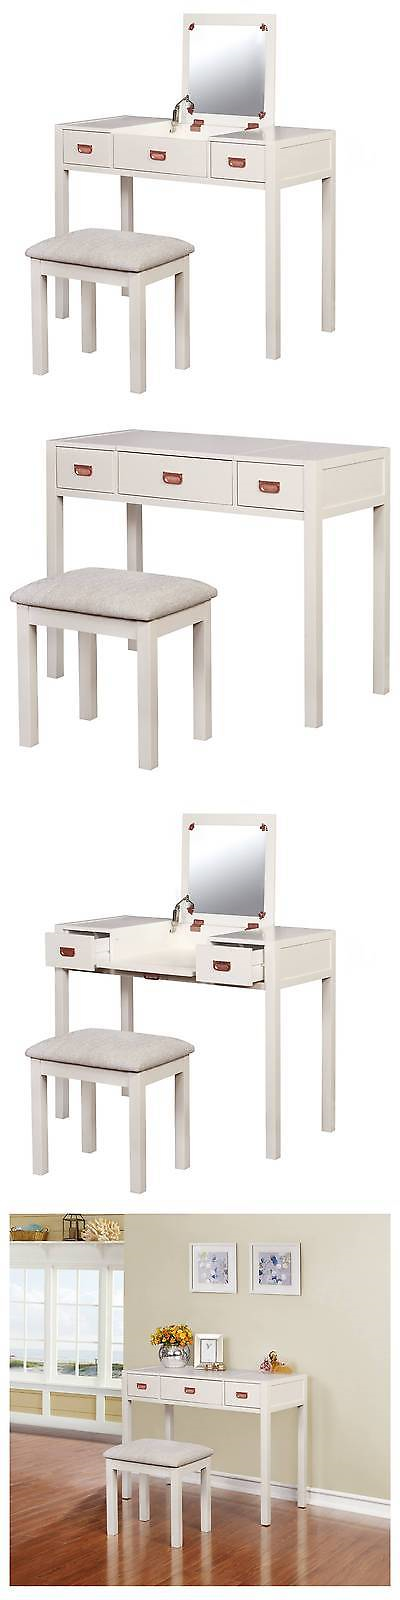 Sets 98478 Audrey Vanity Set - White - Linon -\u003e BUY IT NOW ONLY